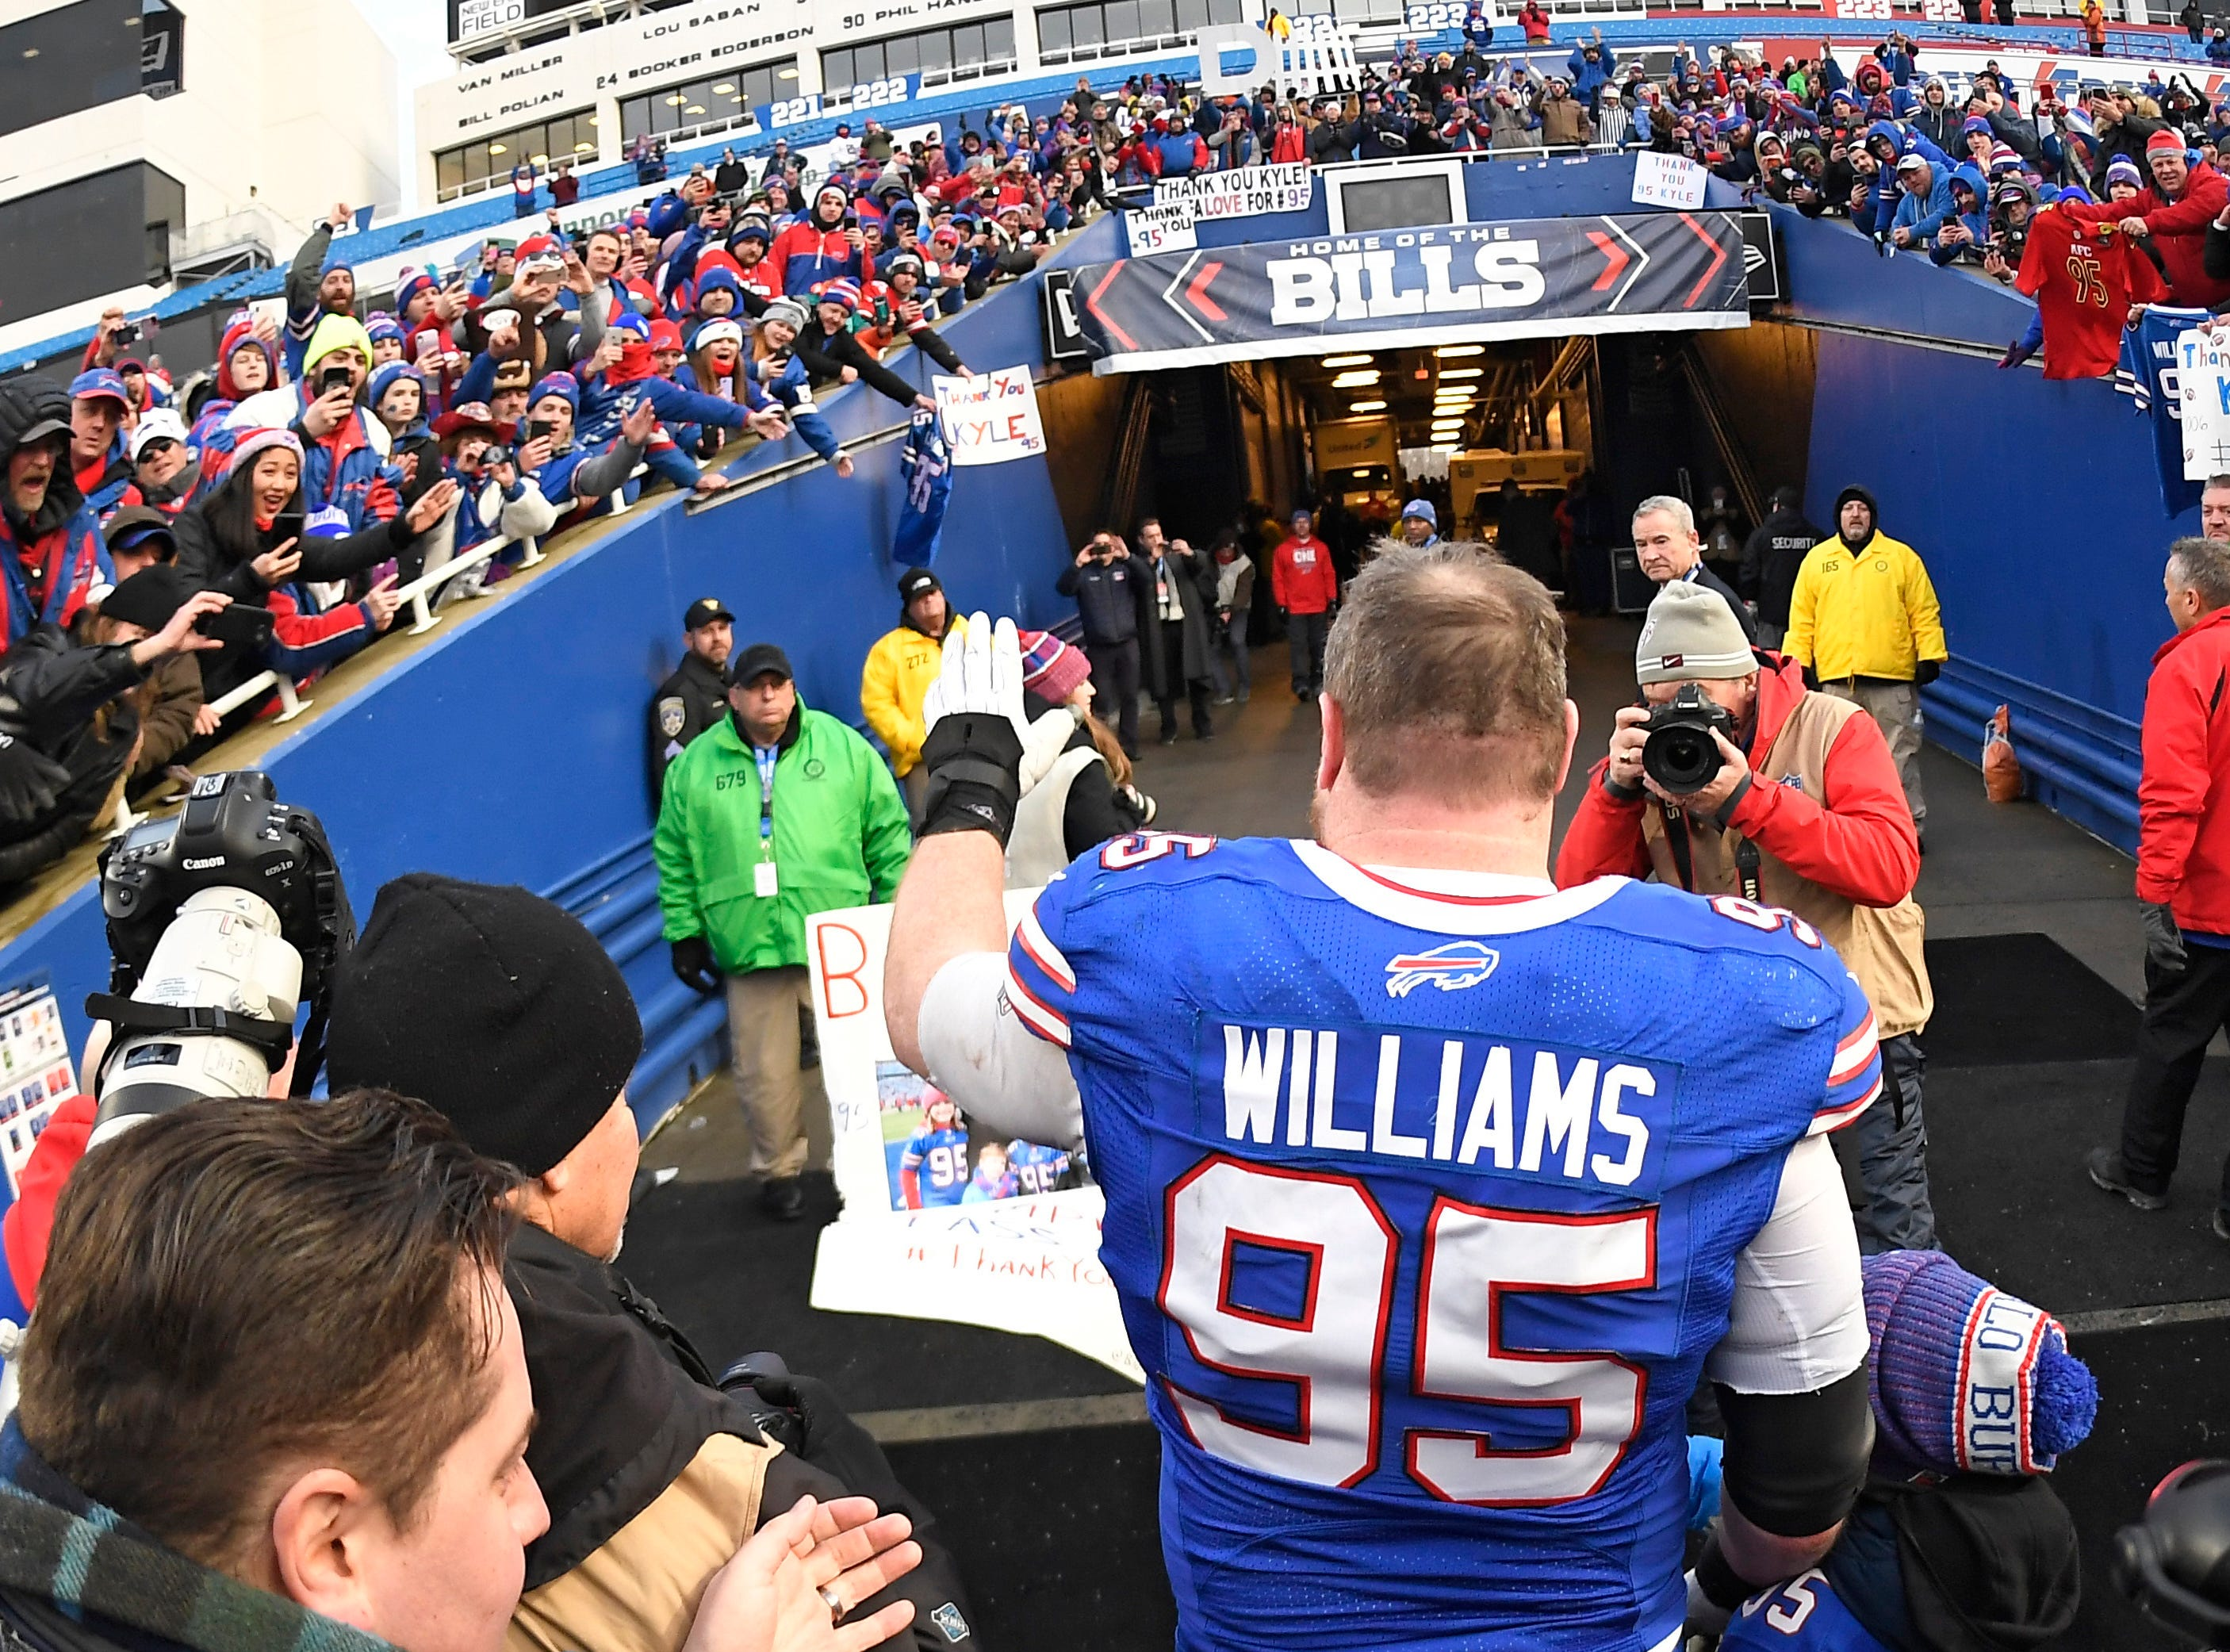 Buffalo Bills defensive tackle Kyle Williams (95) waves to fans after an NFL football game against the Miami Dolphins, Sunday, Dec. 30, 2018, in Orchard Park, N.Y. The Bills won 42-17. (AP Photo/Adrian Kraus)